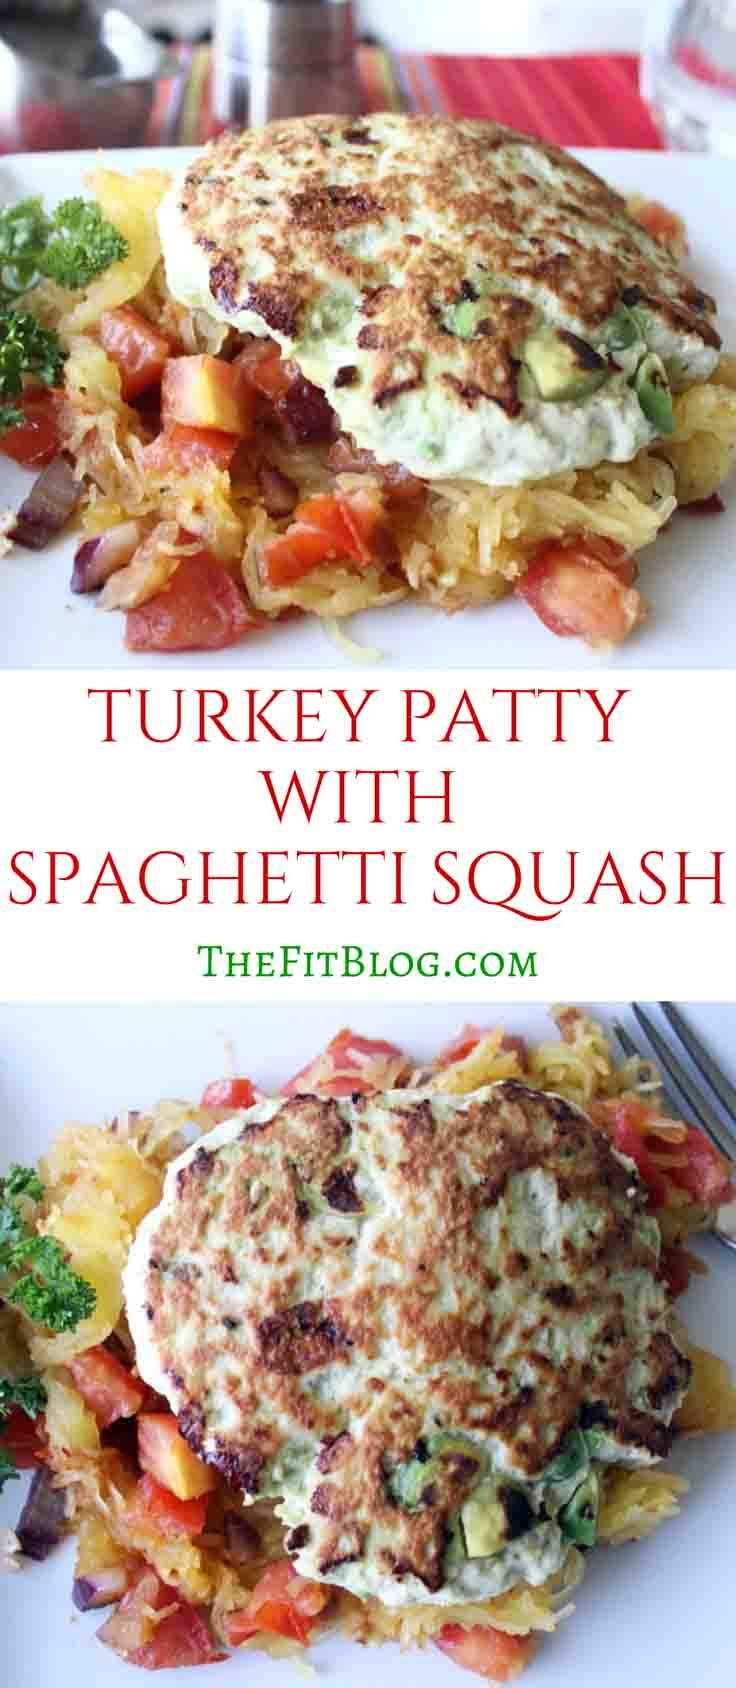 These turkey patties get super juicy because the avocado adds moisture and the spaghetti squash is a perfect low carb substitute for a burger bun.